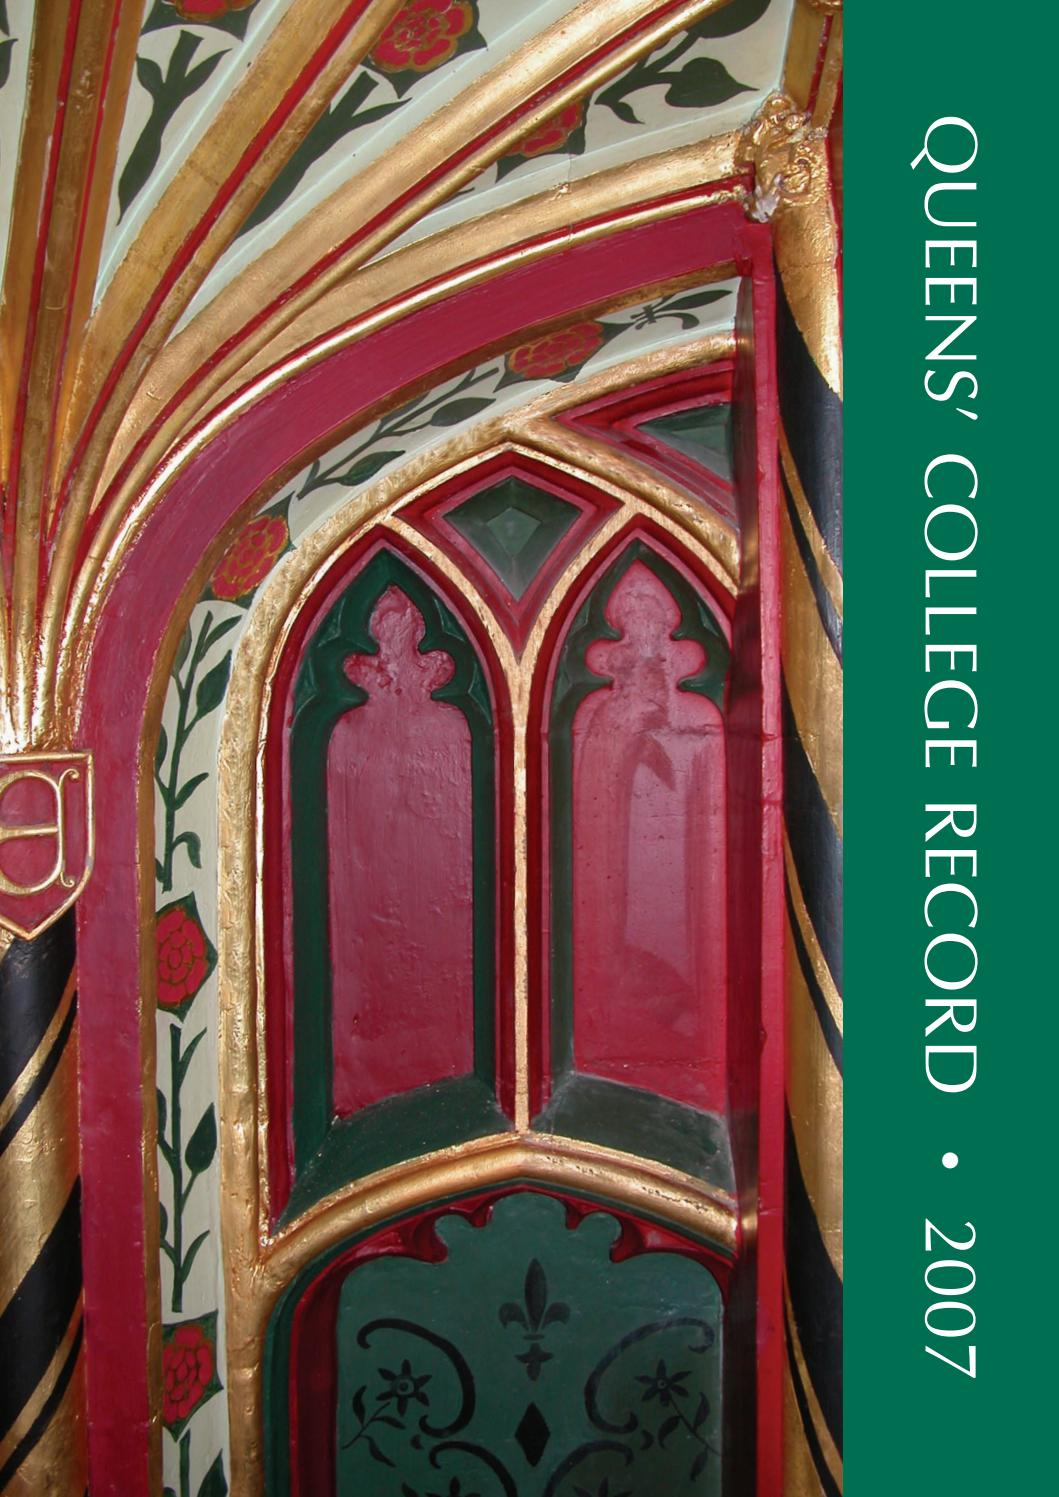 Christs College Magazine 2016 By